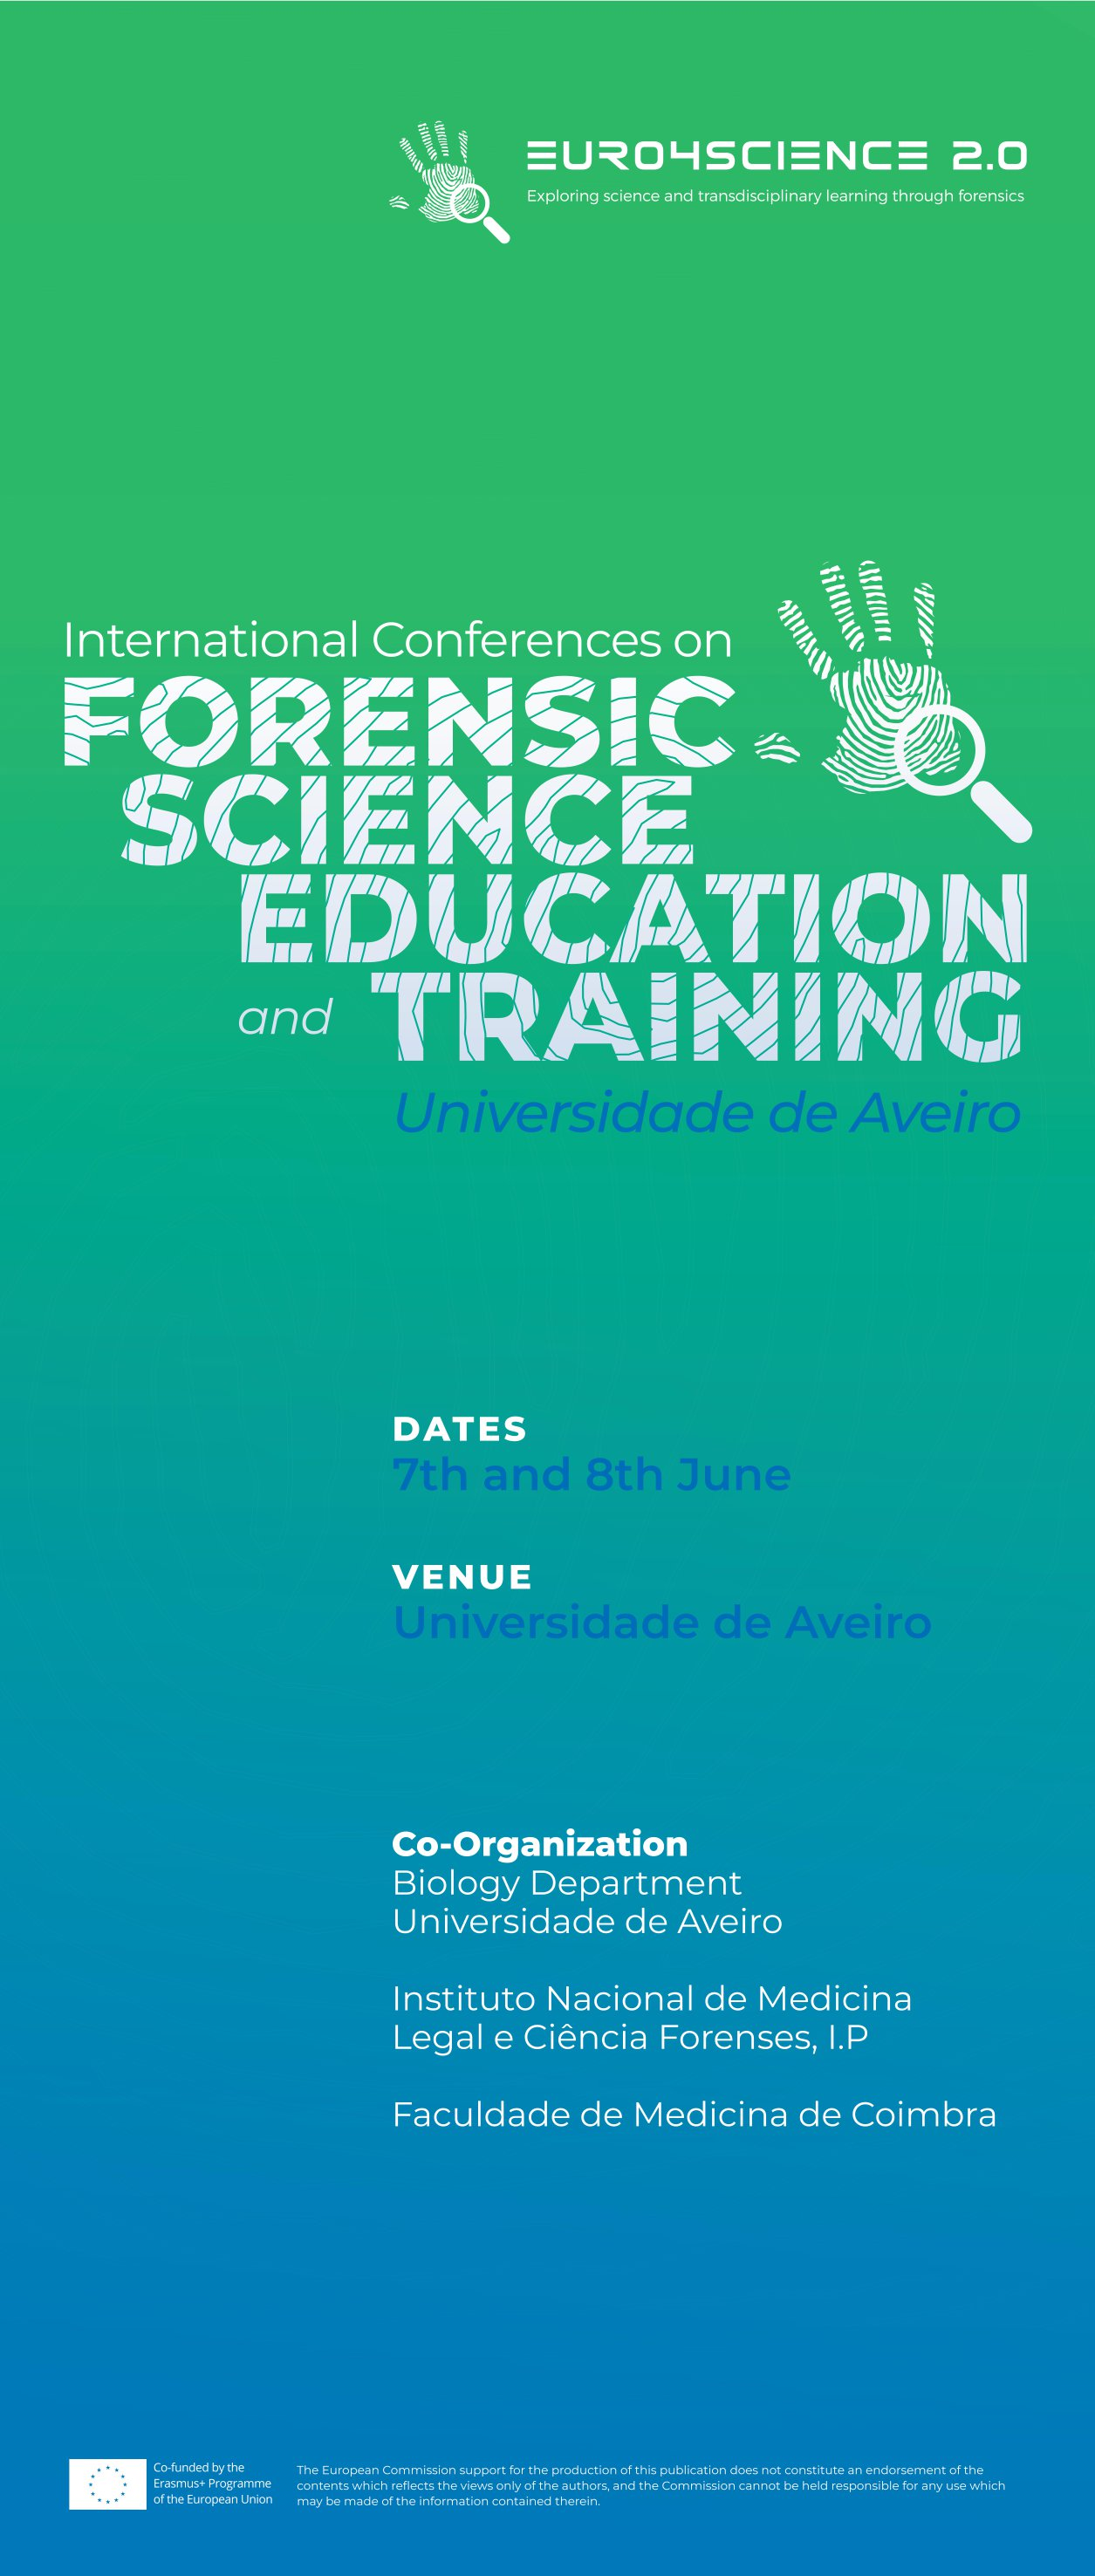 Euro4Science 2.0 International Conferences on Forensic Science Education and Training